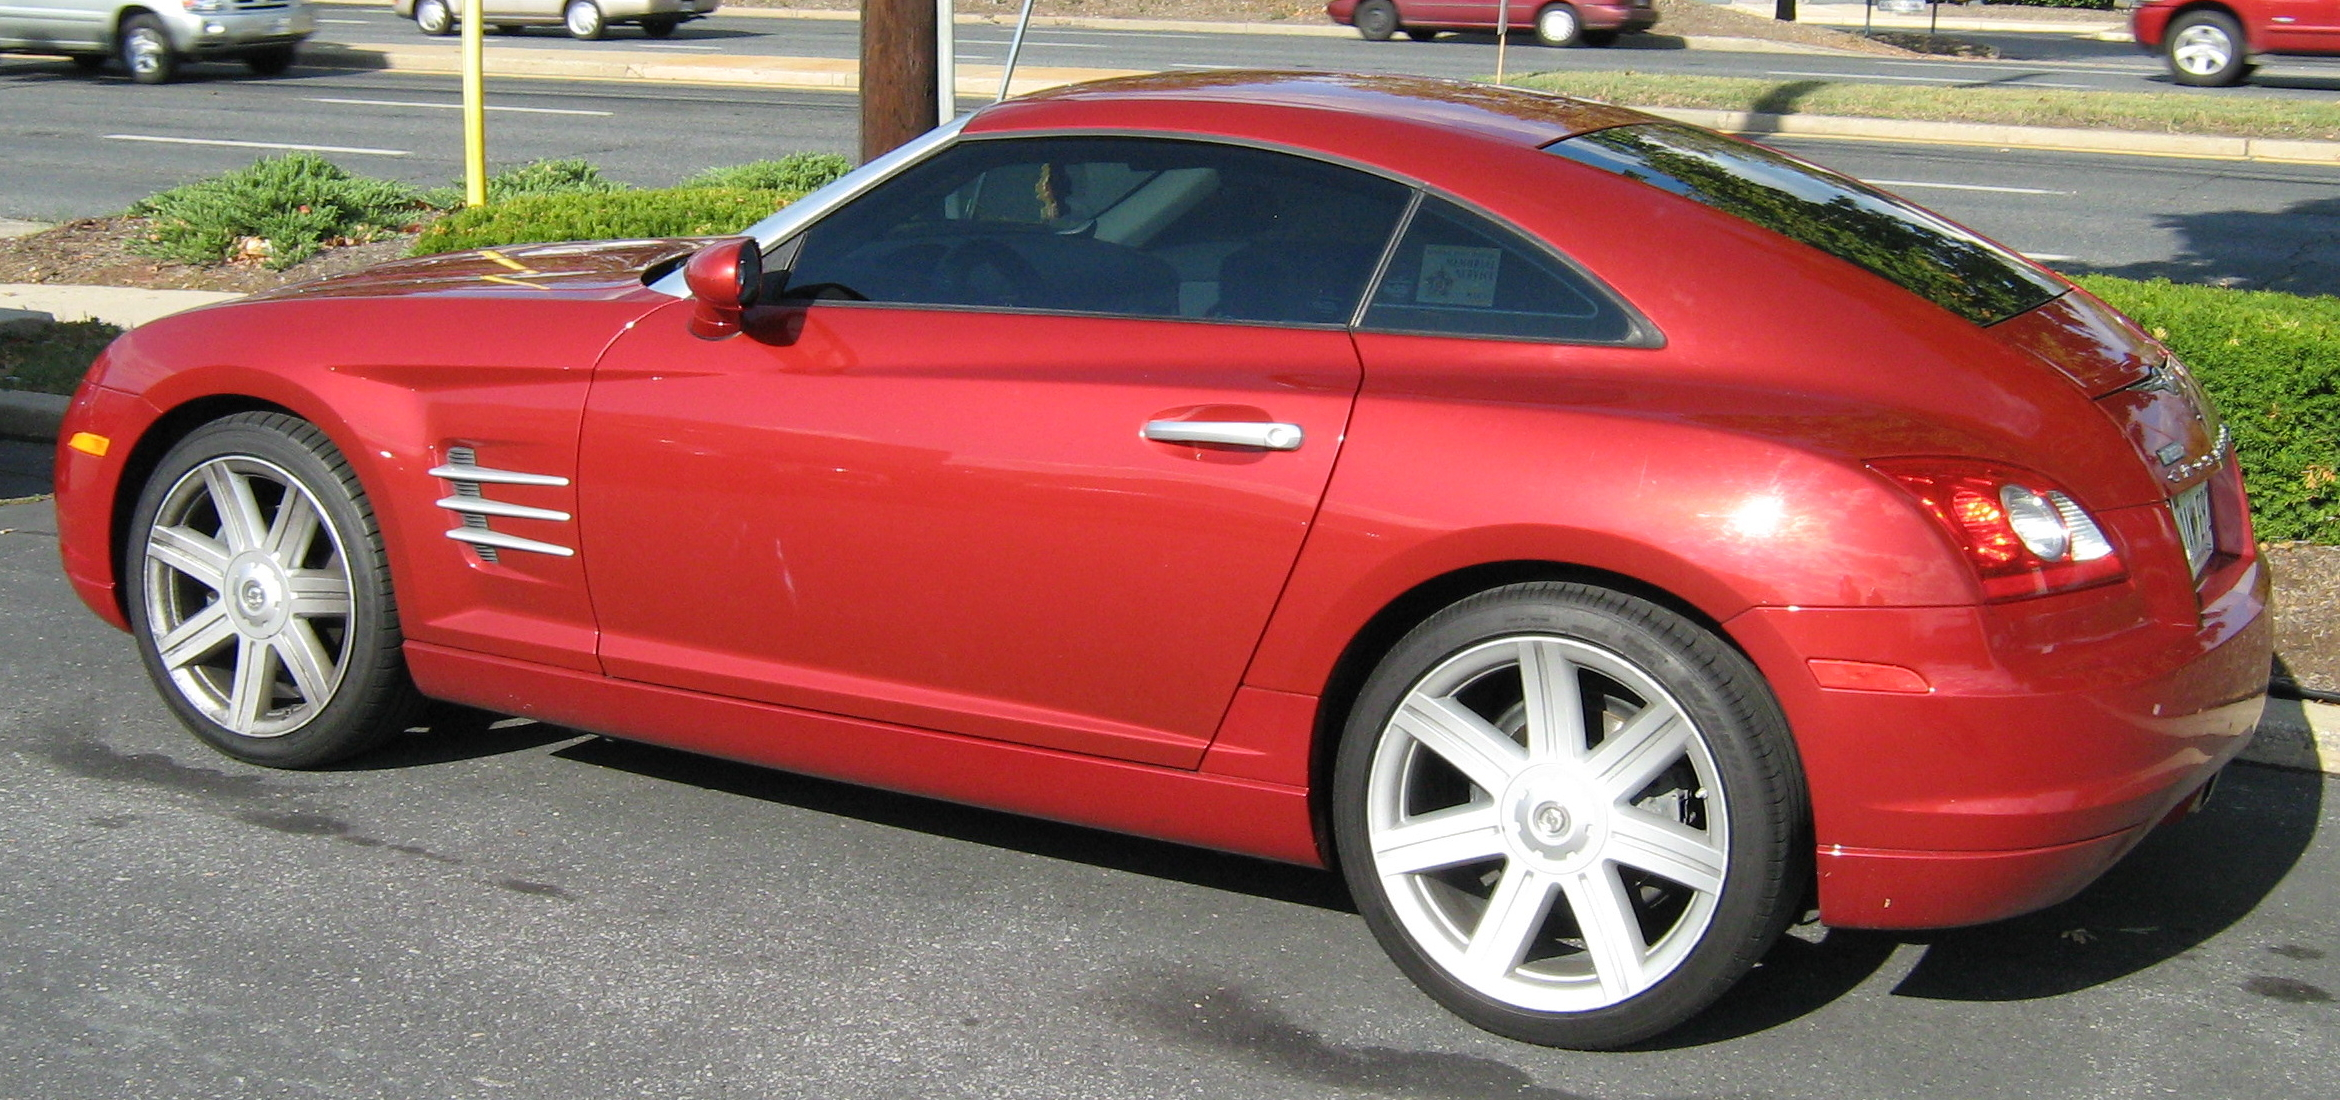 2006 Chrysler Crossfire #13